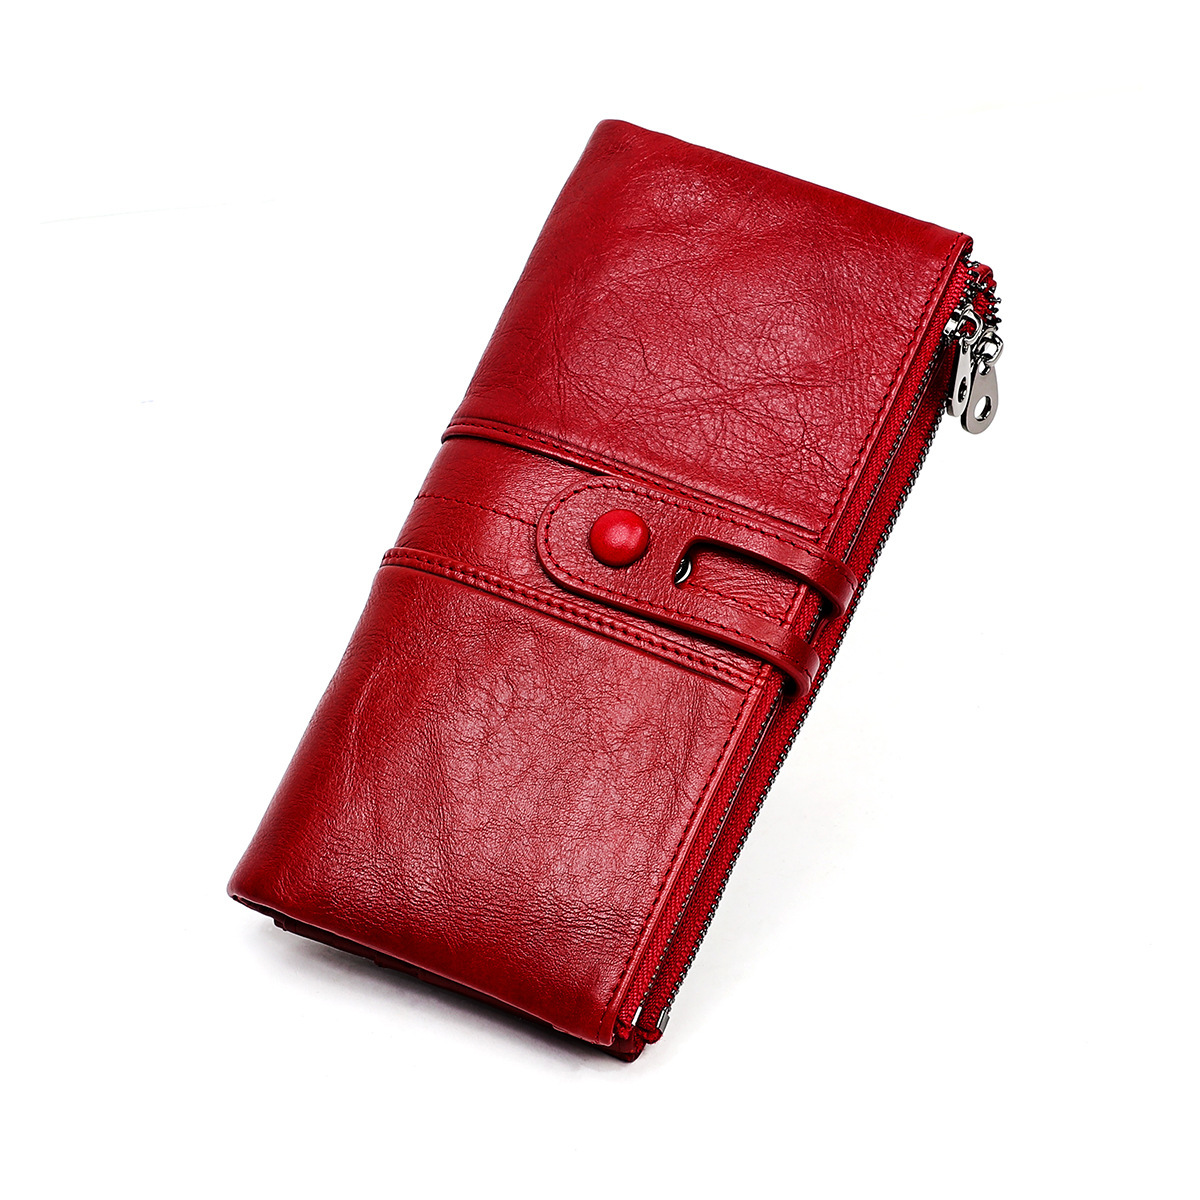 Women Wallets Genuine Leather Wallet Long Money Pocket Female Coin Purse Card Holder Leather Women Carteira Feminina Carteras(China)